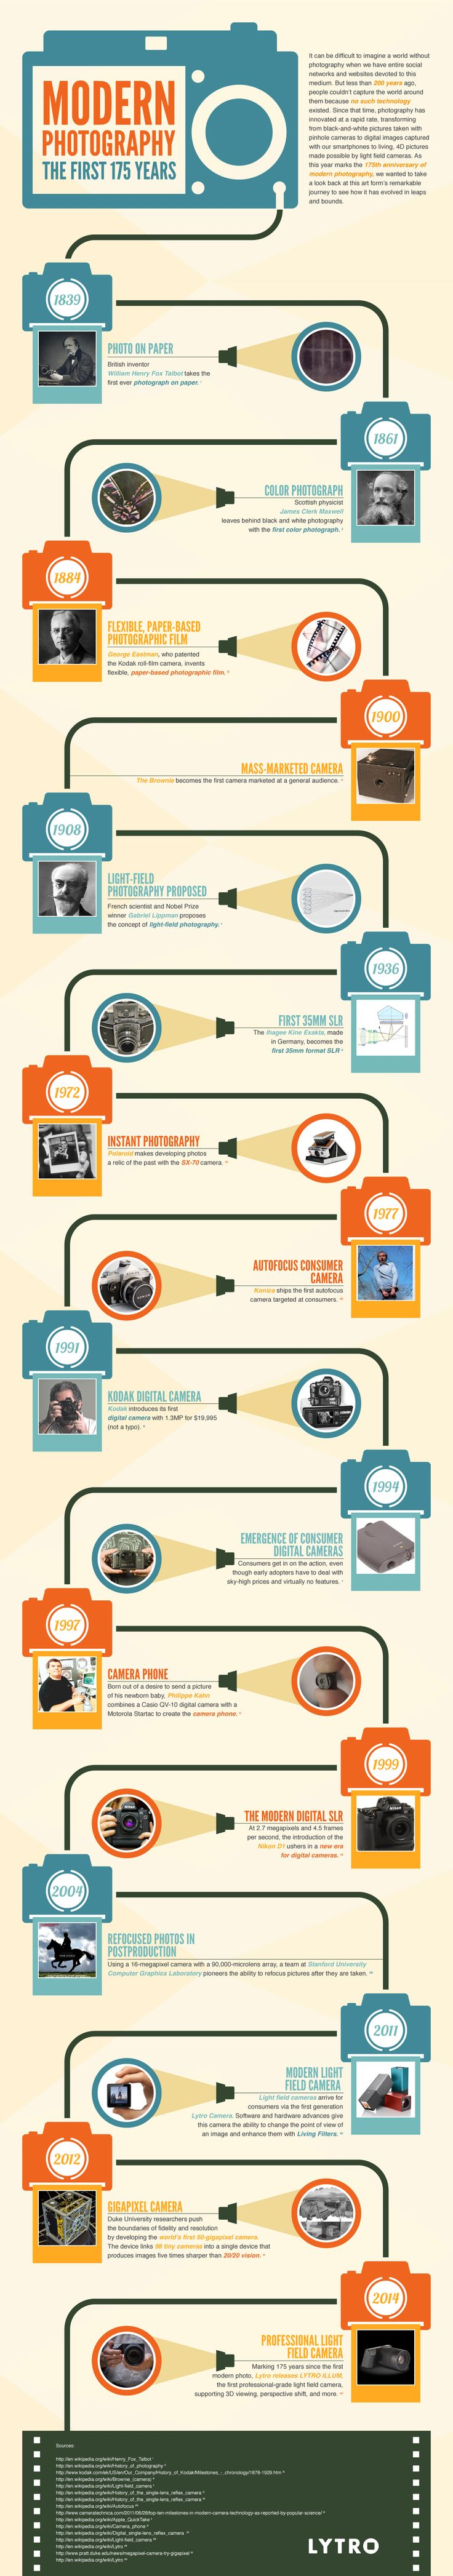 Lytro Celebrates 175 Years of Photography with a History of Cameras Infographic | Fstoppers